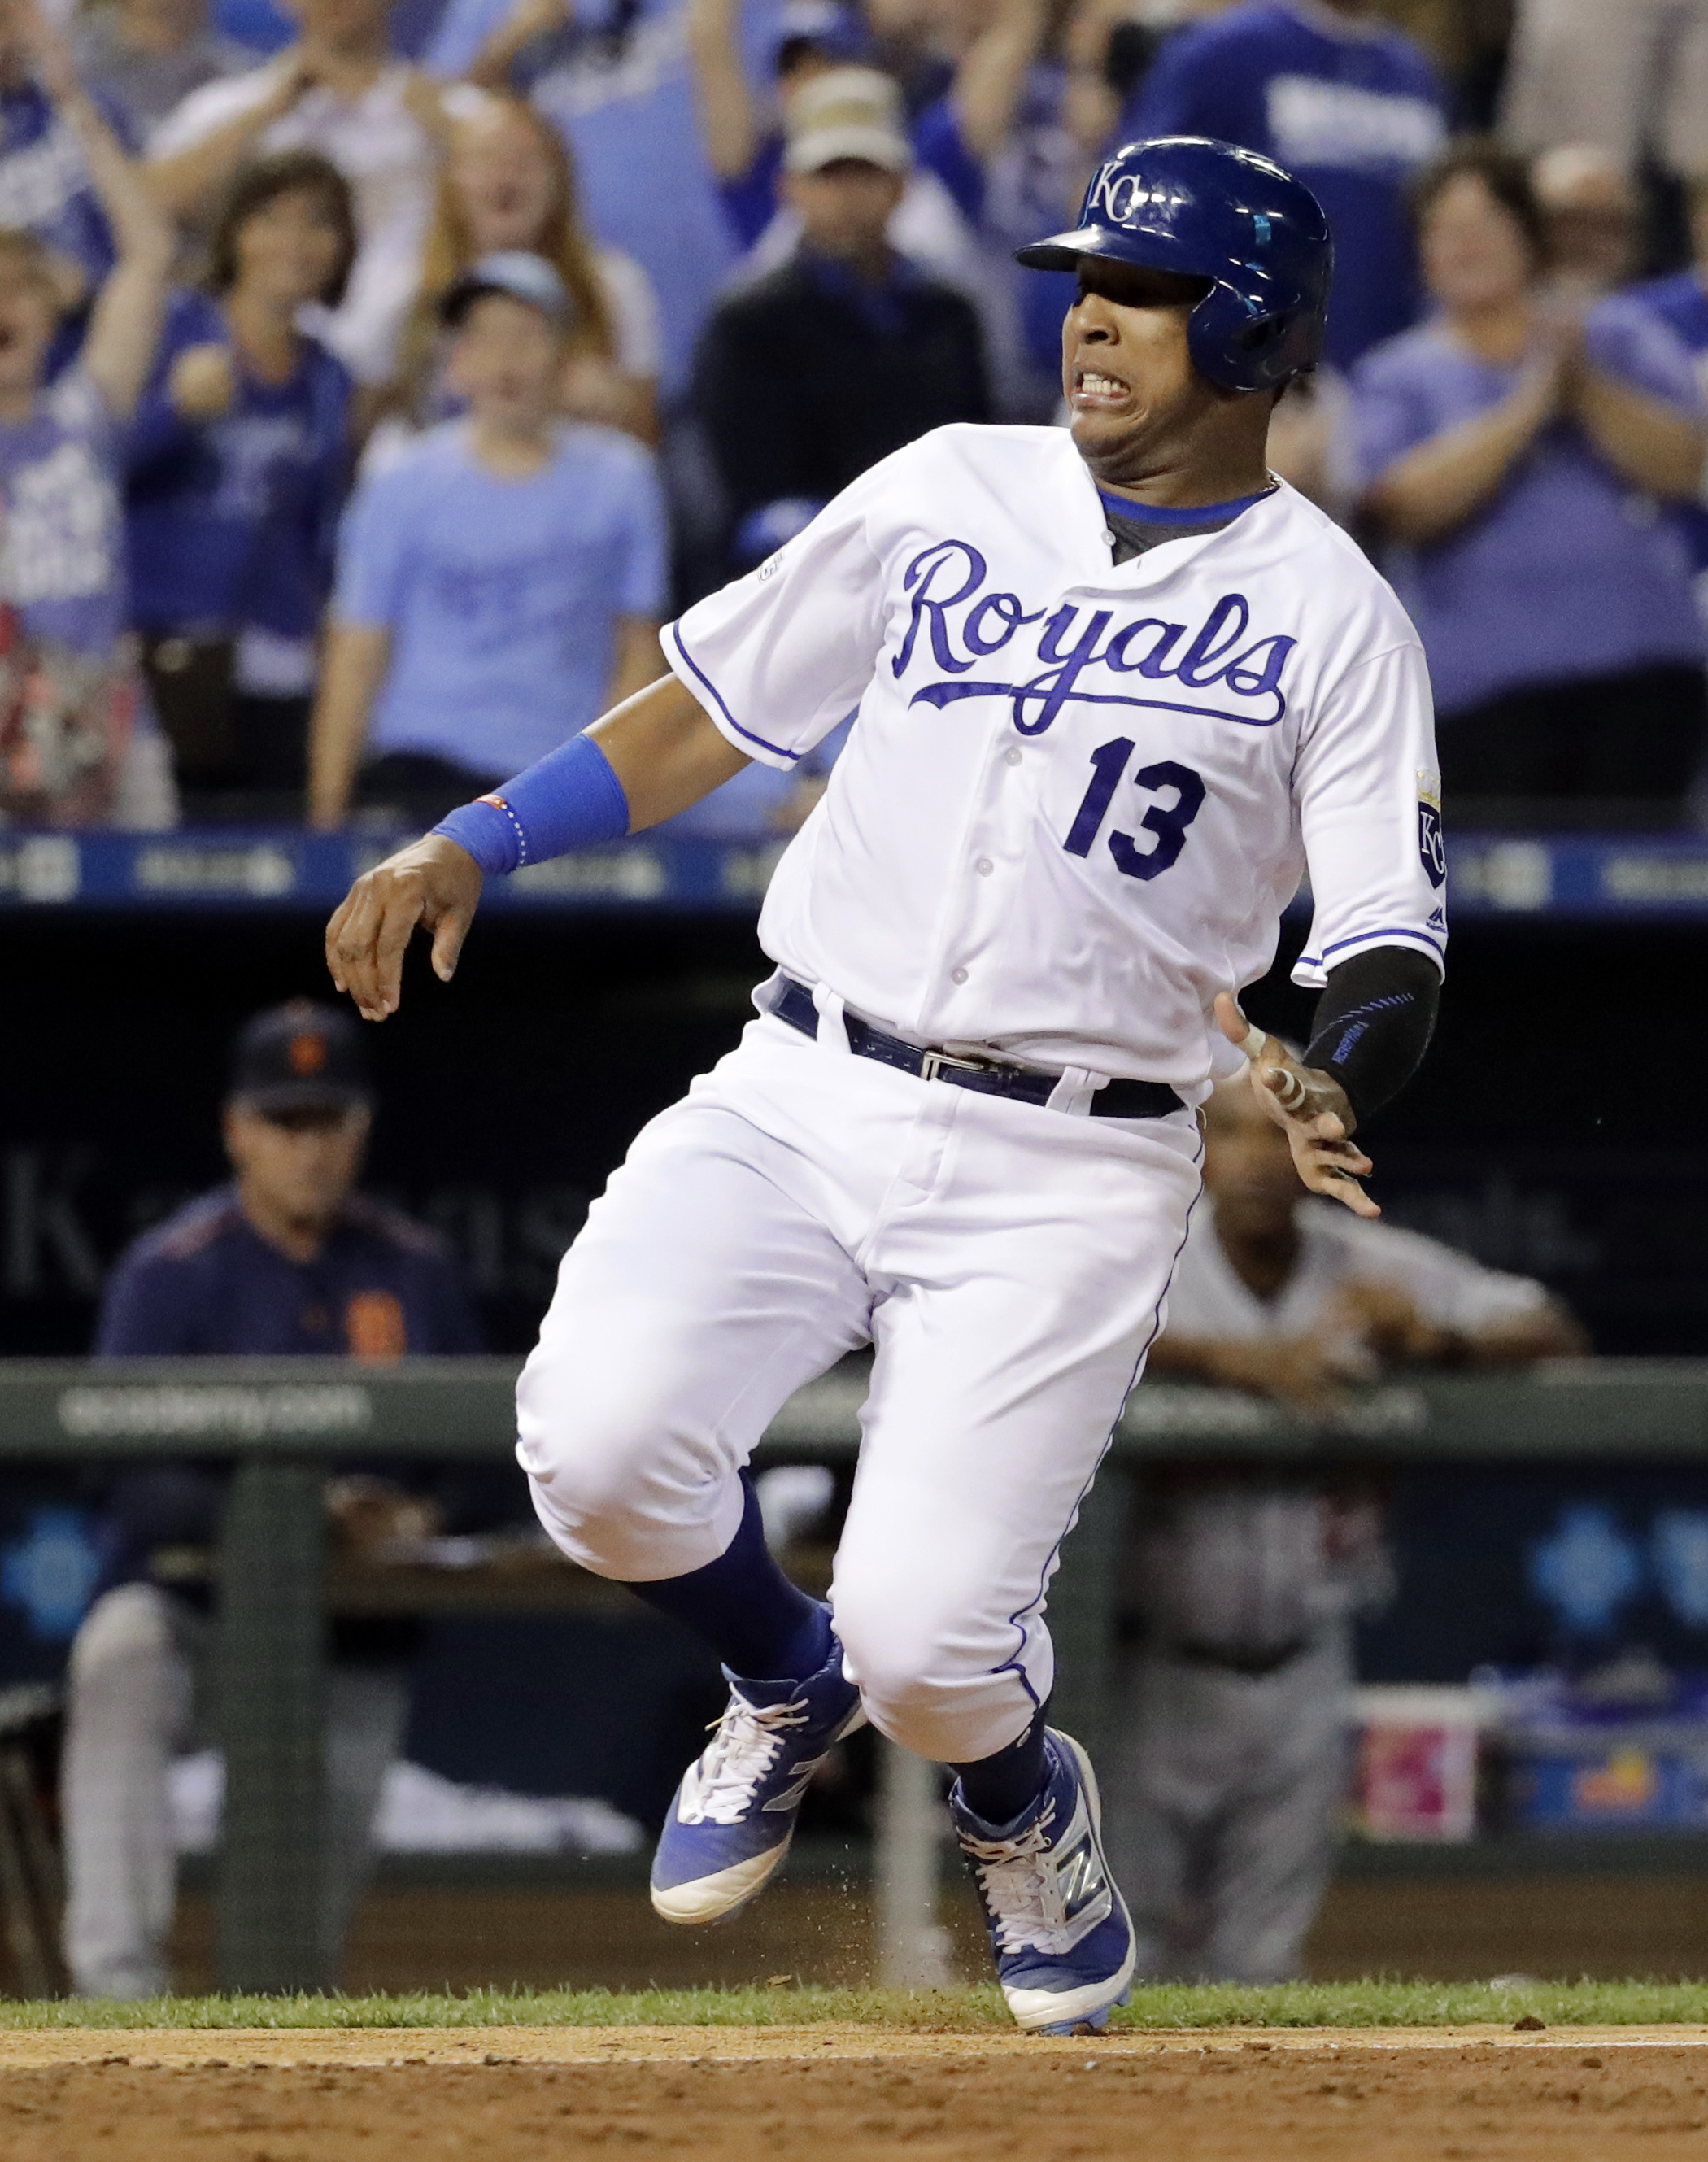 Kansas City Royals' Salvador Perez slides home to score an a two-run single by Alcides Escobar during the eighth inning of a baseball game against the Detroit Tigers on Saturday, Sept. 3, 2016, in Kansas City, Mo. (AP Photo/Charlie Riedel)